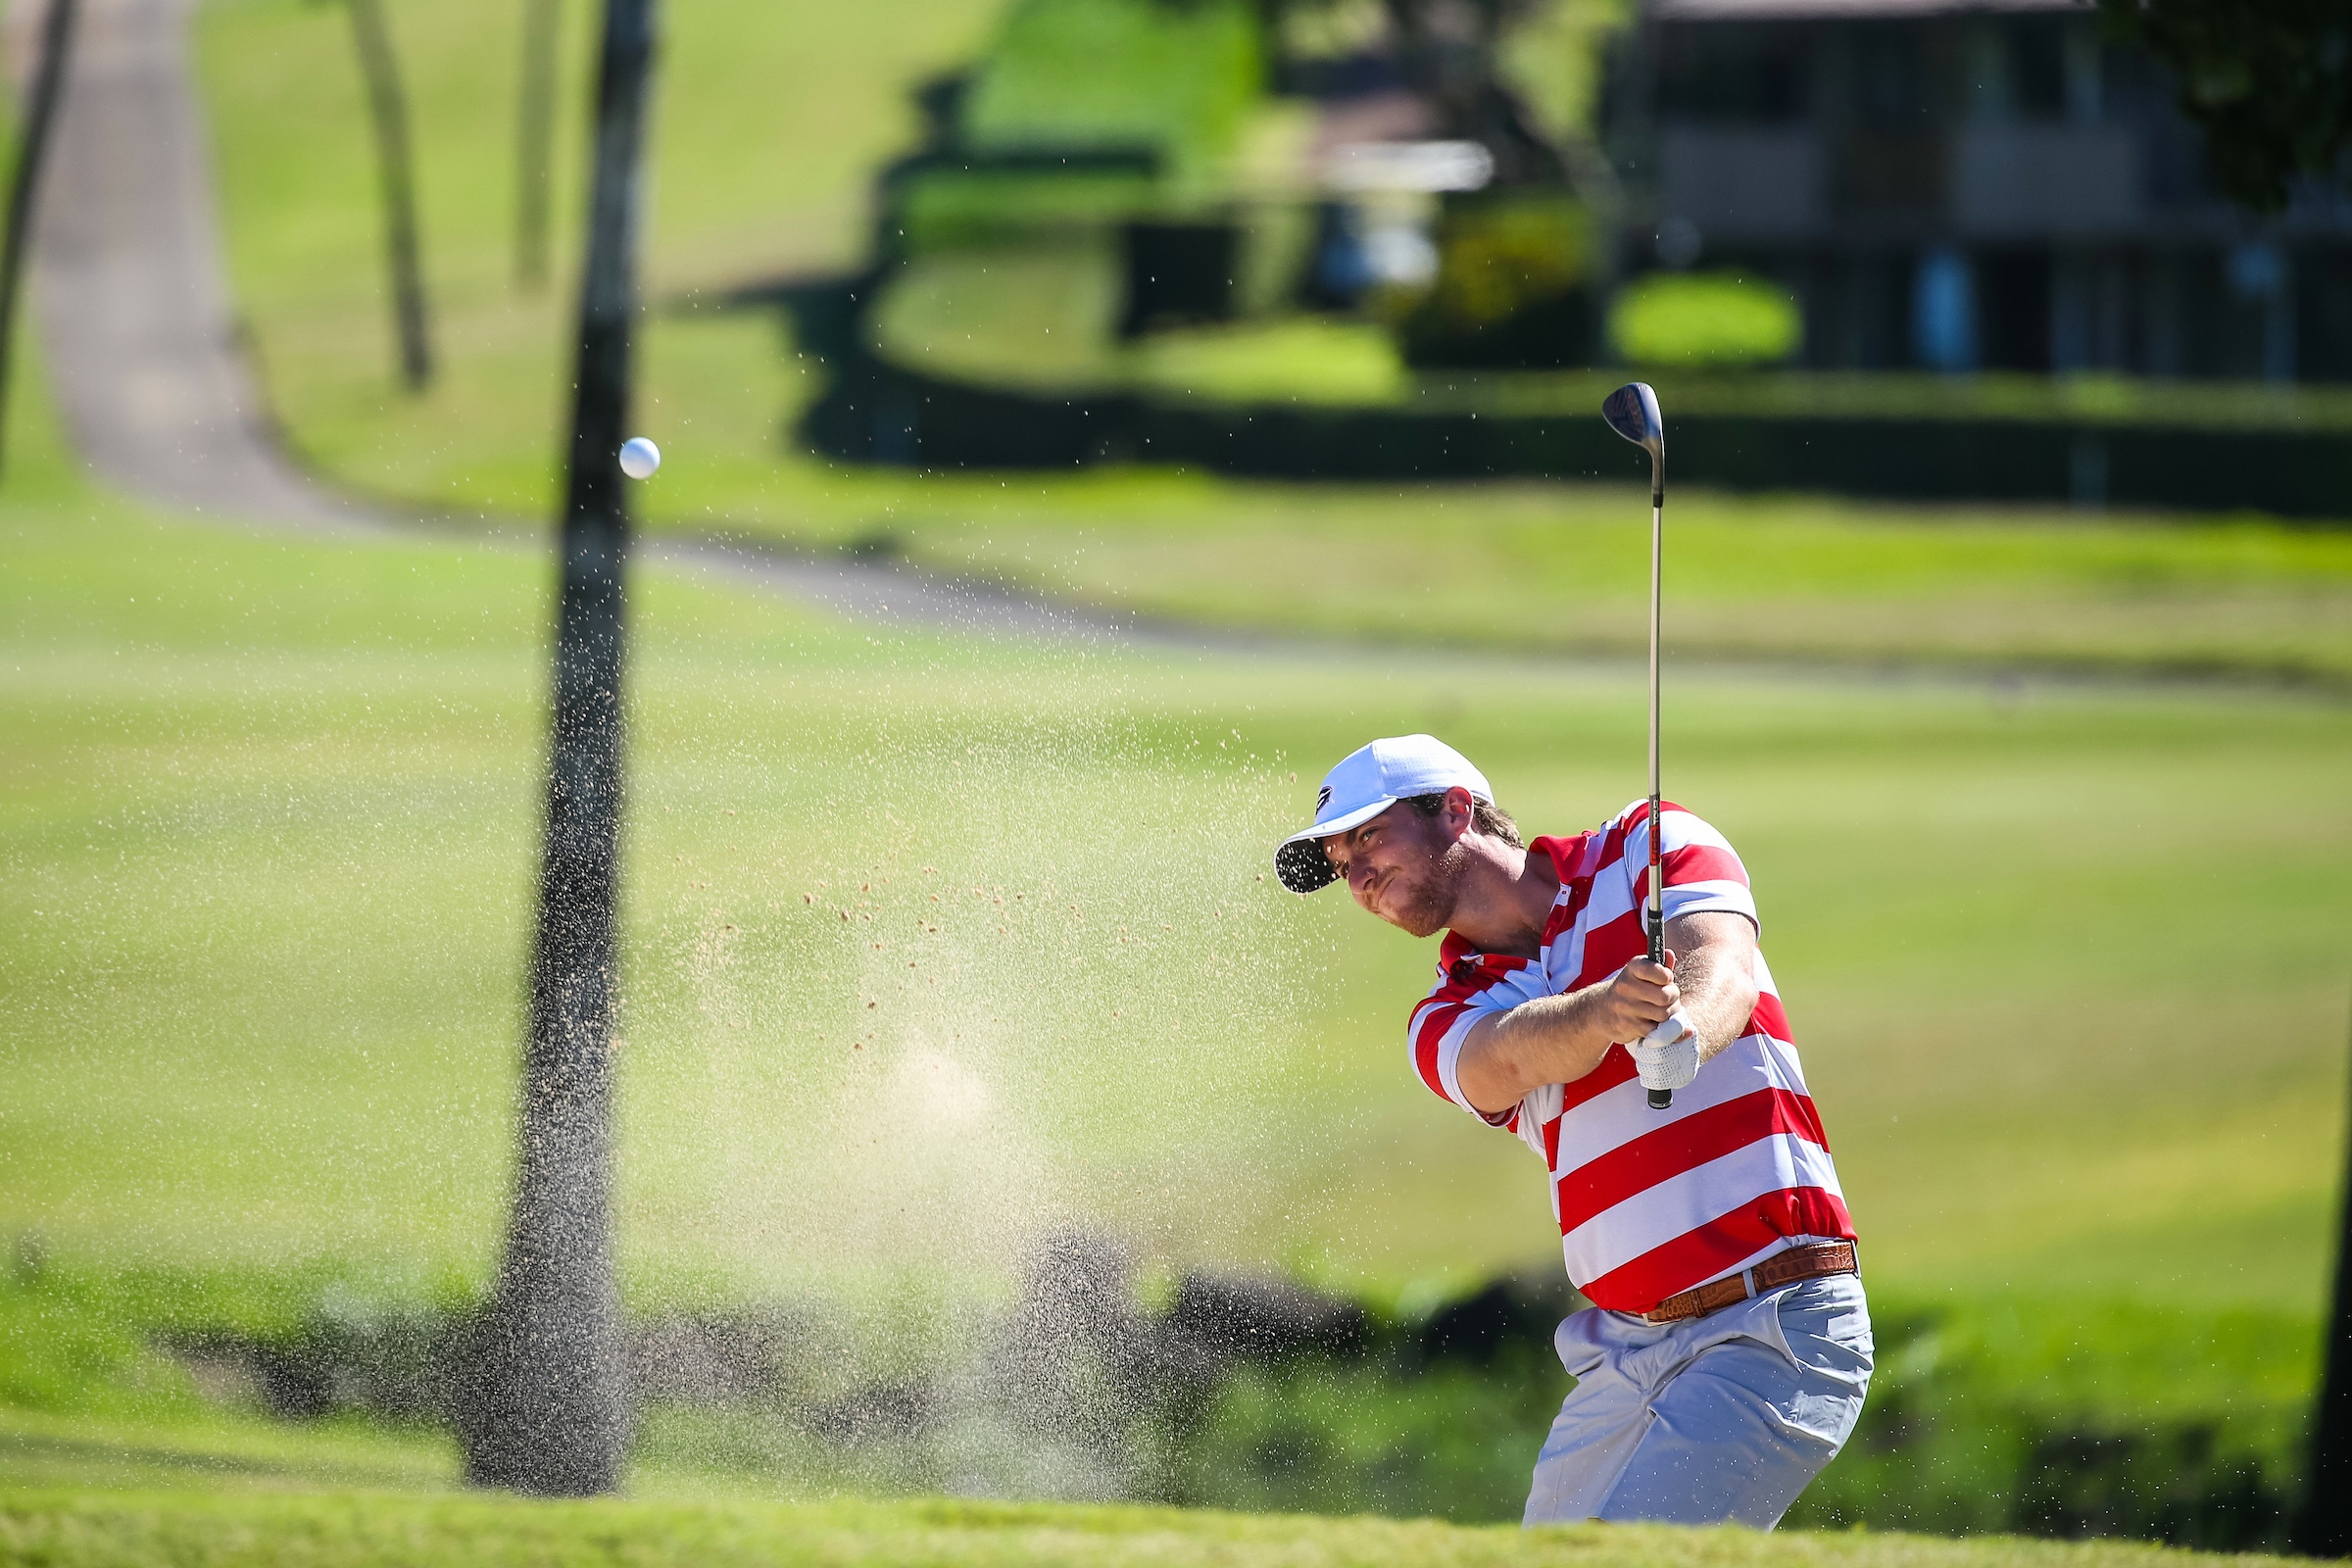 Zach Healy of Georgia hits out of the green side bunker on number five during the second round of the 3rd annual Kaanapali Classic collegiate invitational. Kaanapali Royal Course Lahaina, Hawaii November 5th, 2016/ Photo by Aric Becker